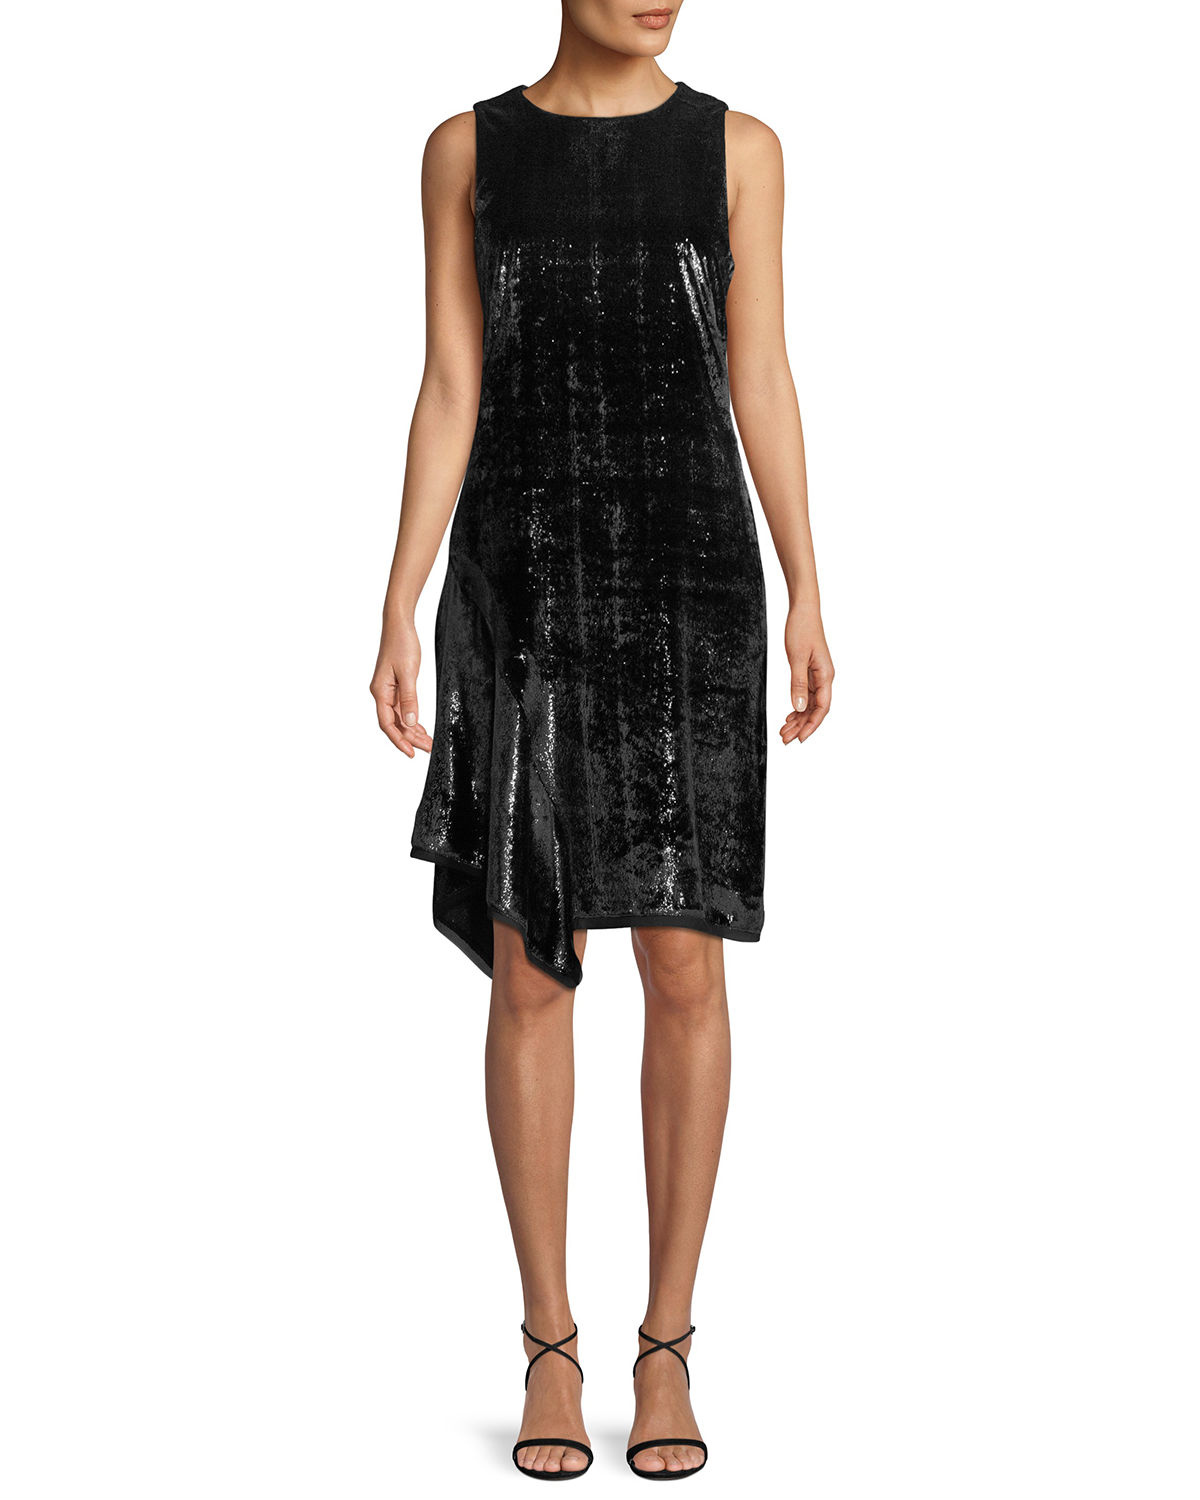 Elie Tahari Dresses SERENITY METALLIC SLEEVELESS DRESS